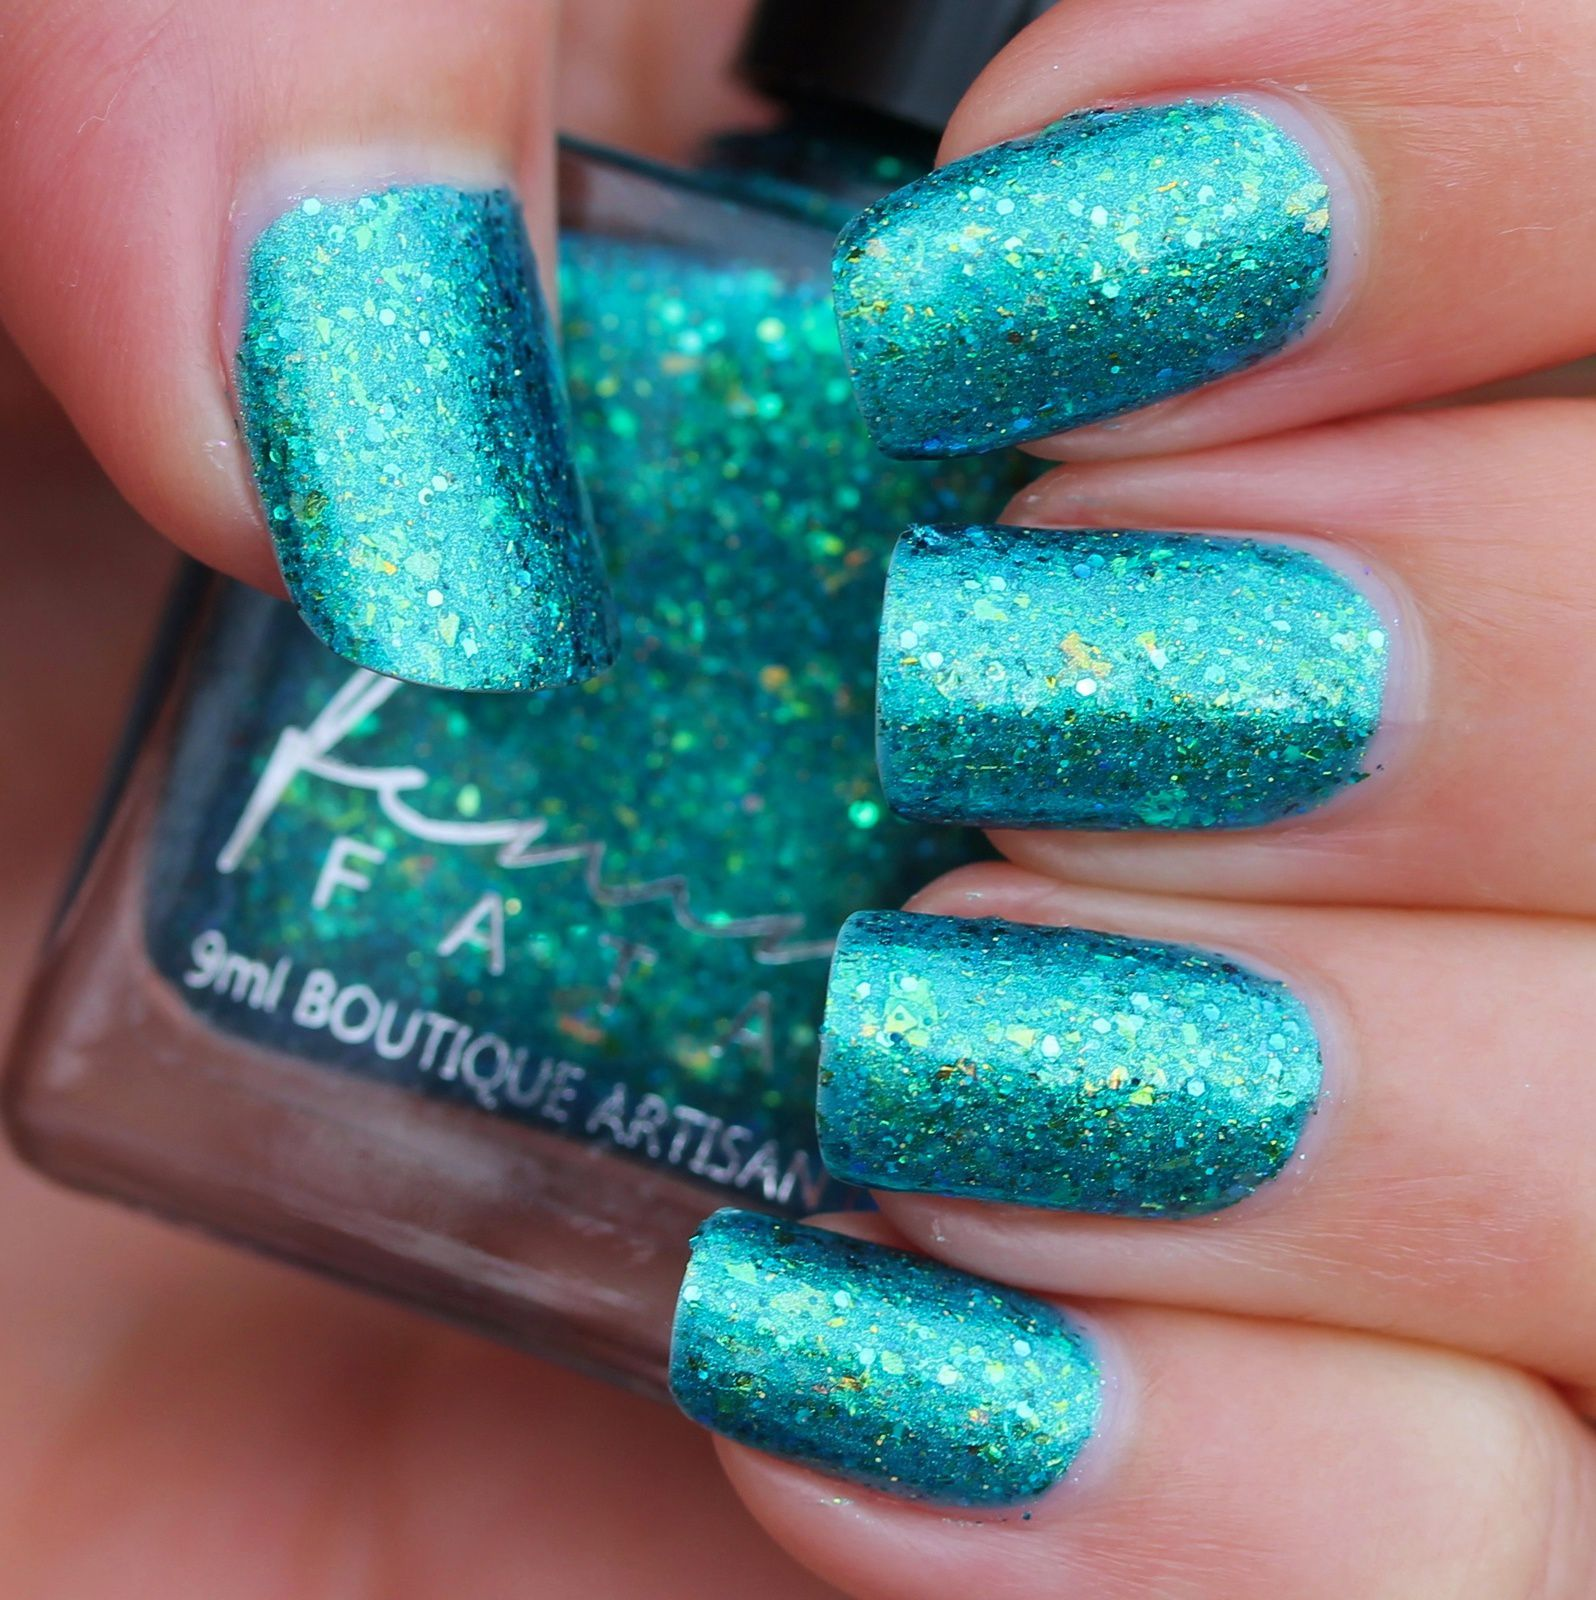 Femme Fatale Cosmetics - Jewel from the Deep (2 coats, no top coat)